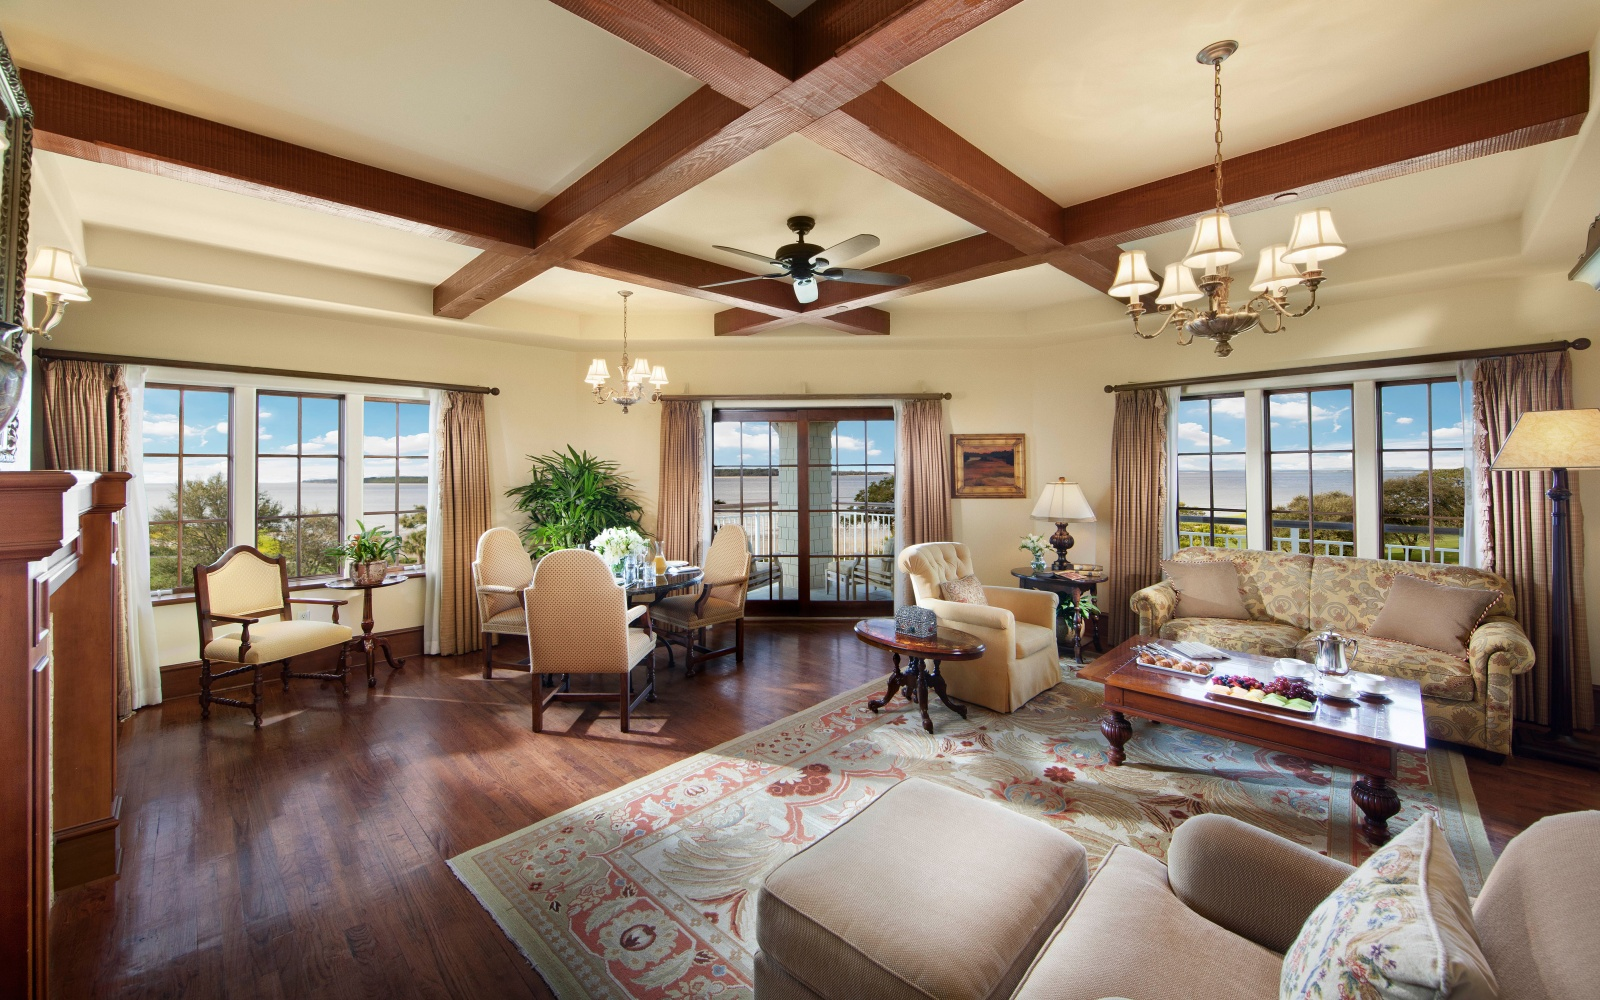 The Lodge at Sea Island Golf Club